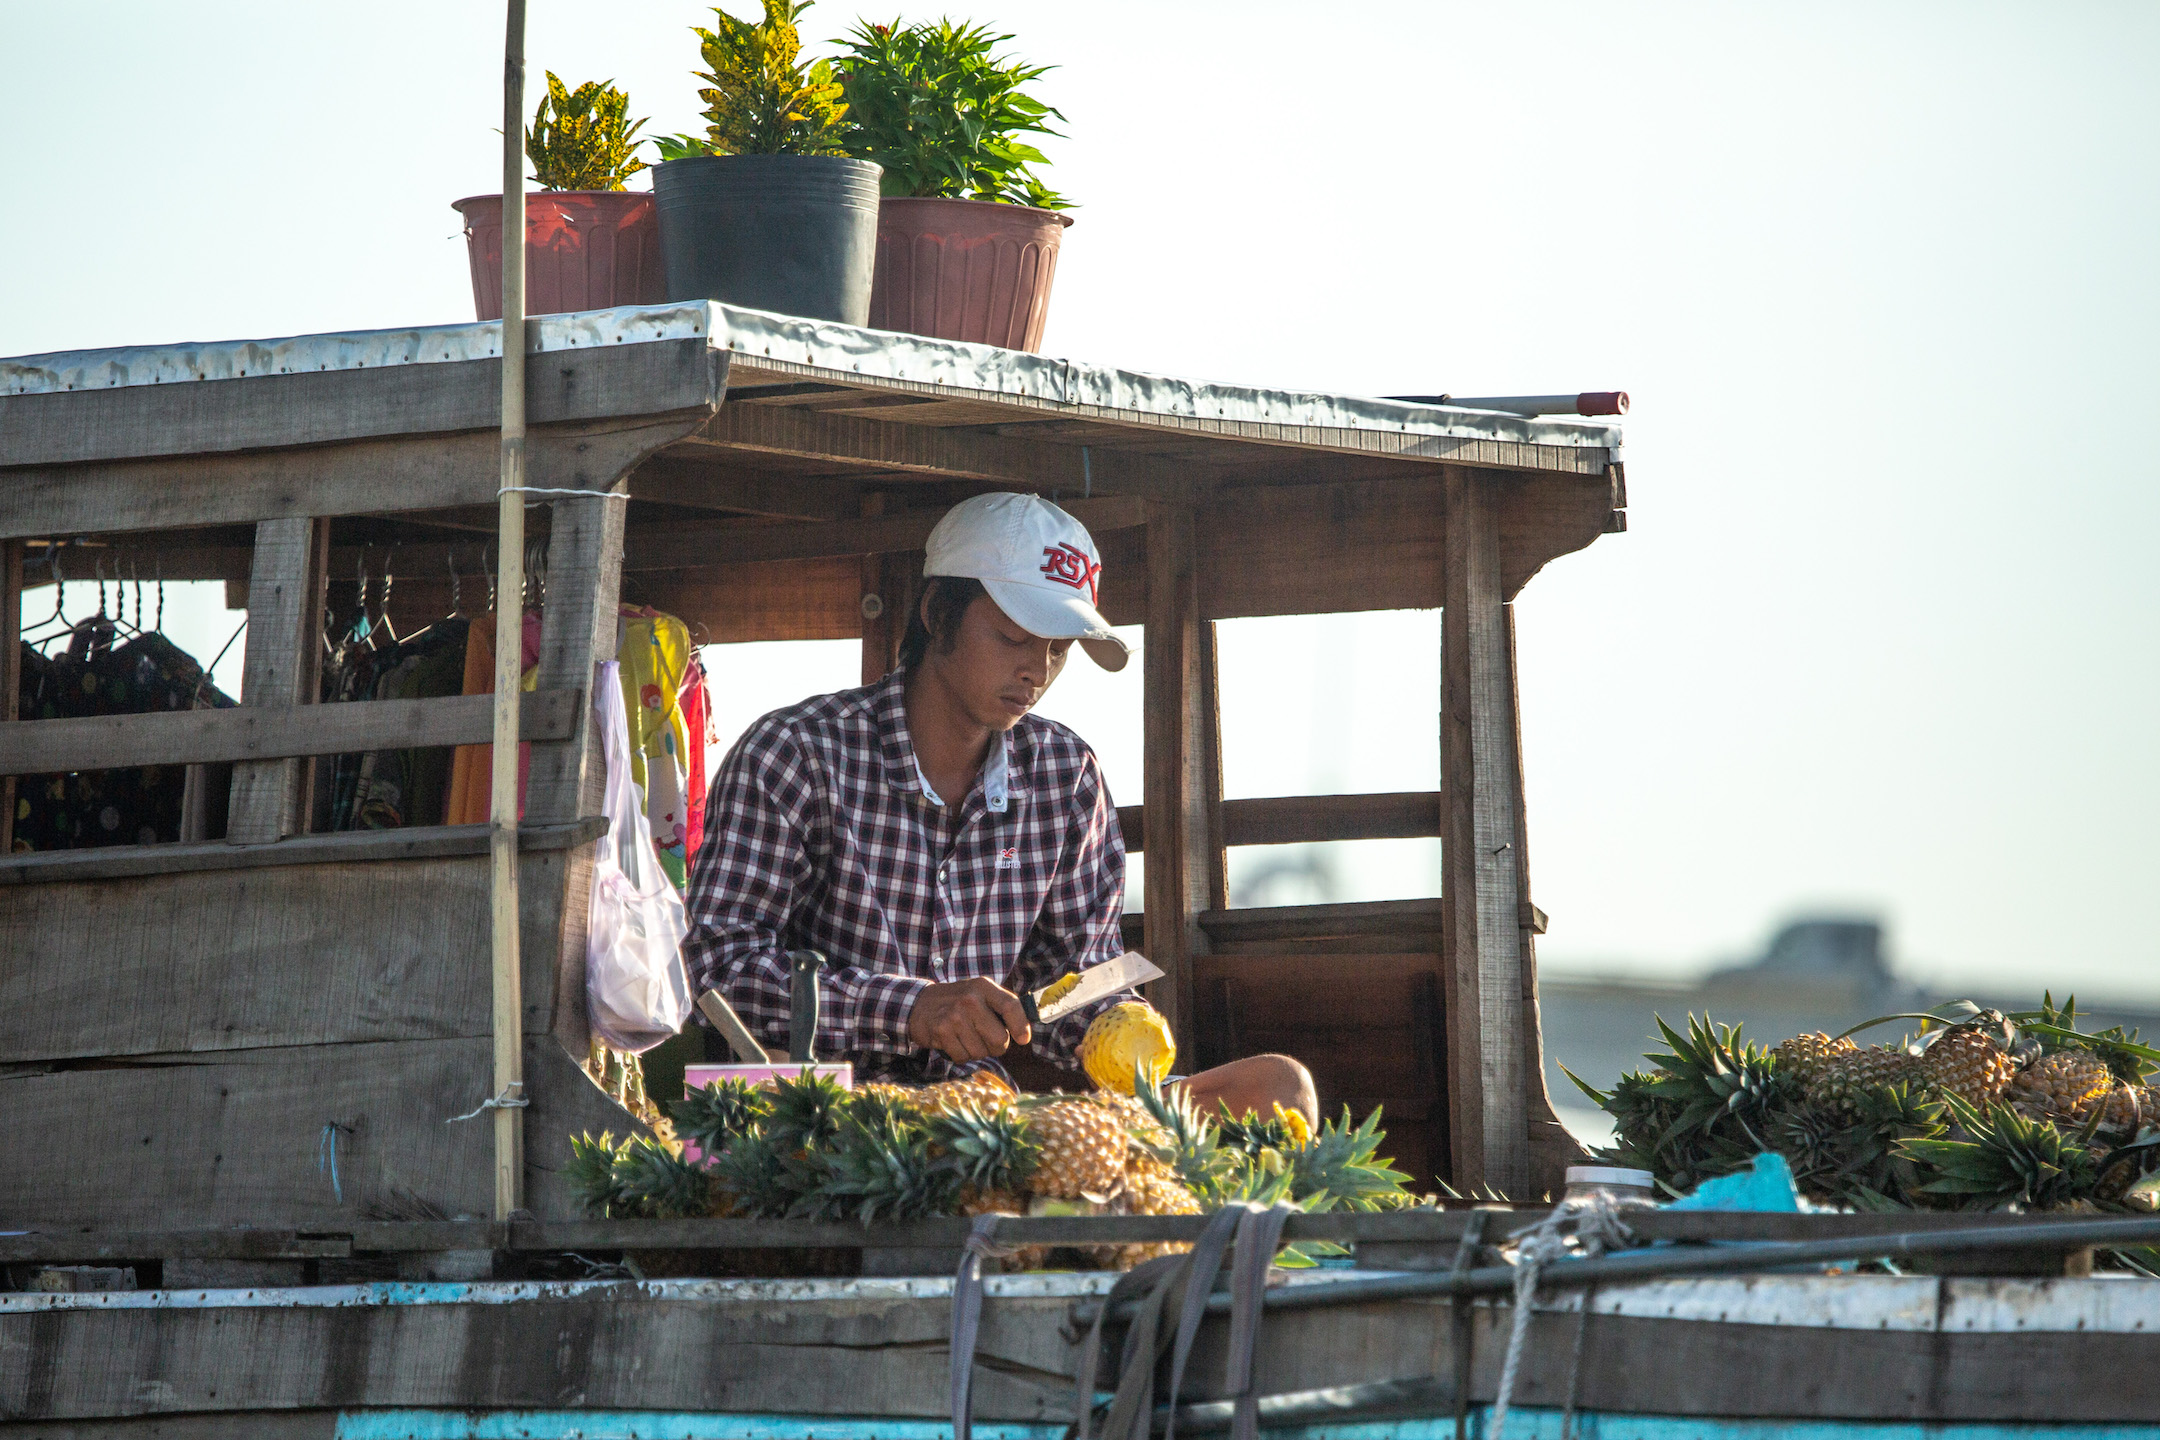 A young man chops fresh pinapple at a booth.